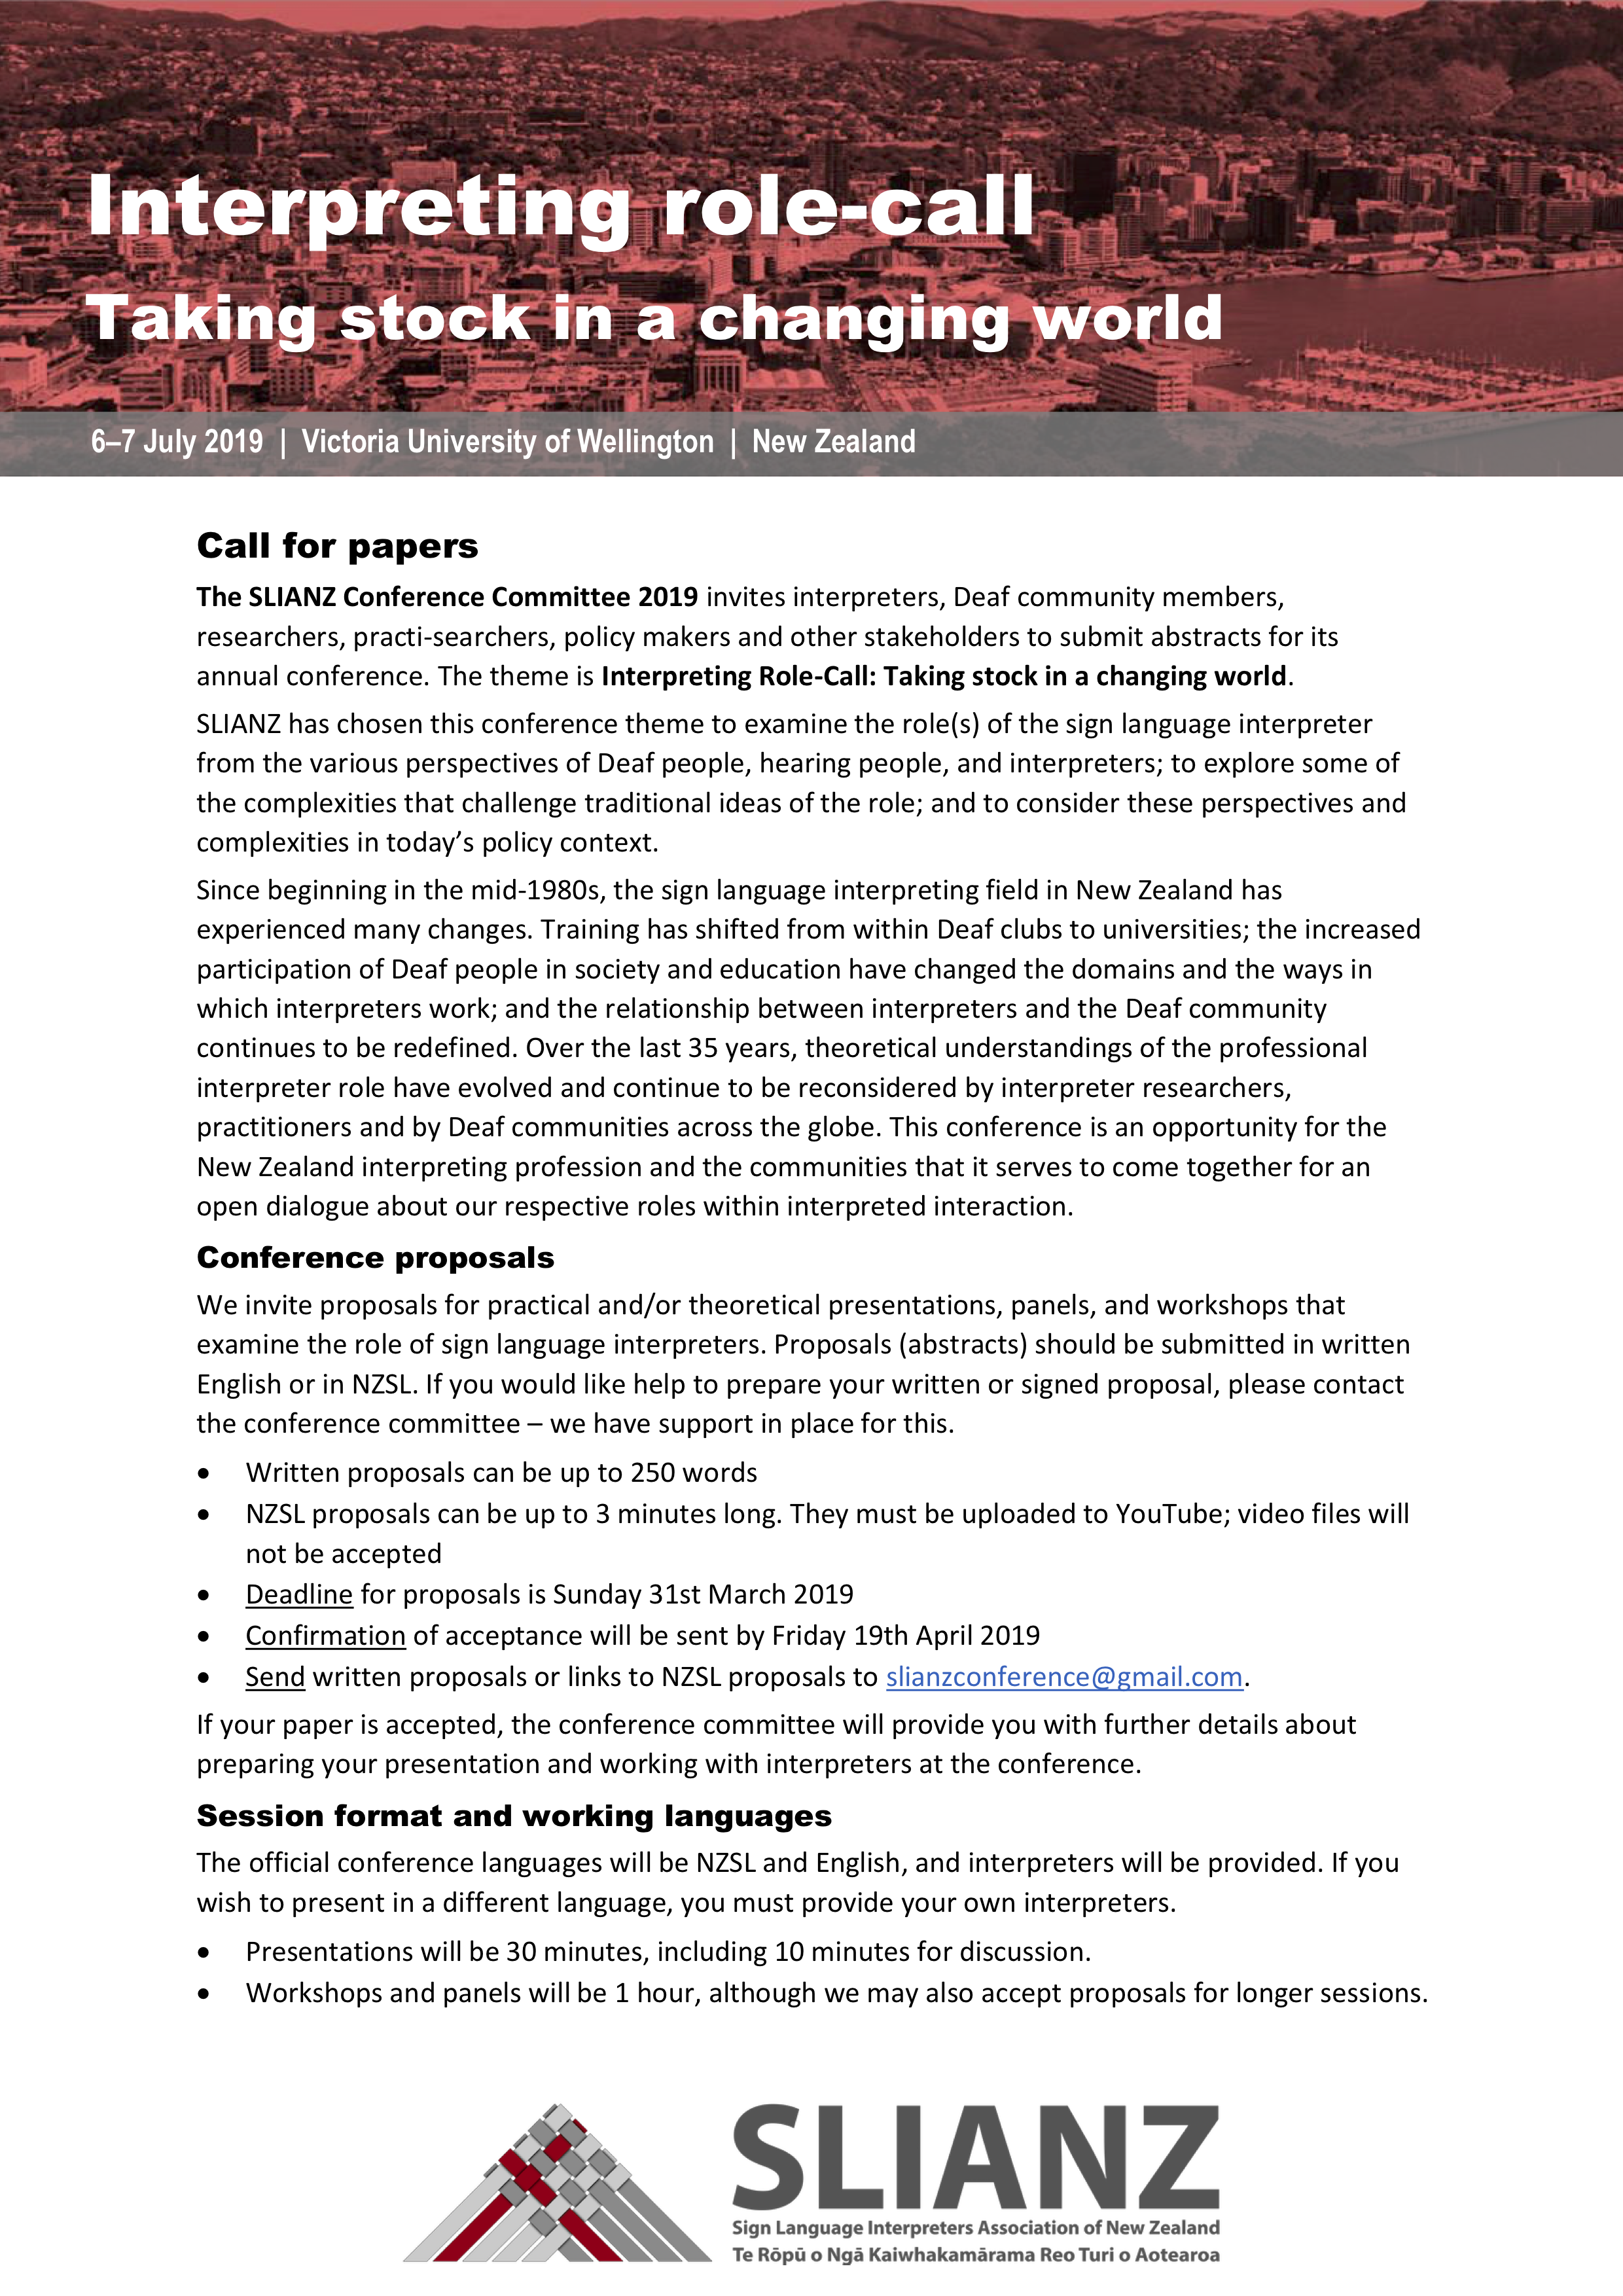 Call for Papers: SLIANZ Conference, 6-7 July 2019,  Wellington NZ